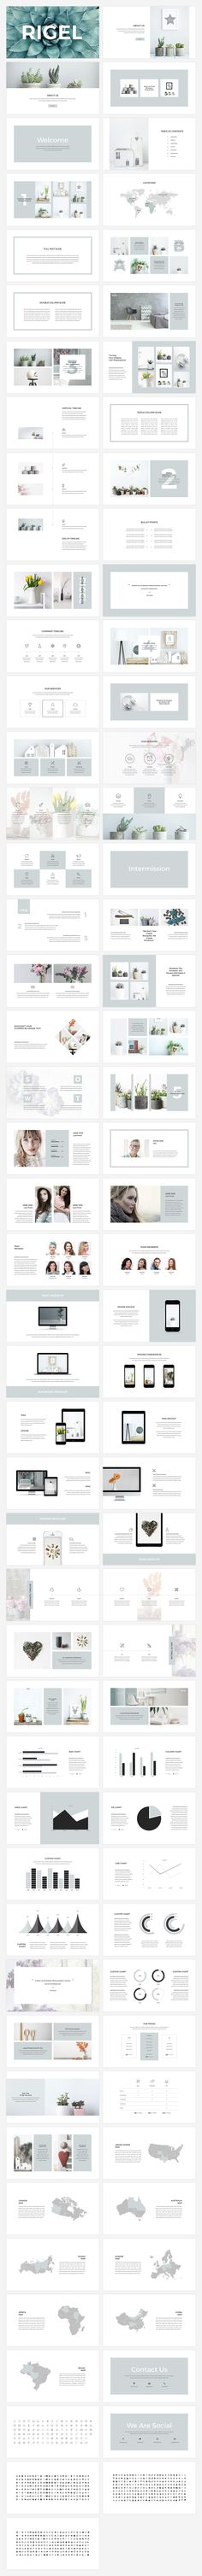 Rigel Presentation Template by SlideStation on @creativemarket Indesign Presentation, Portfolio Presentation, Presentation Slides Design, Interior Presentation, Slide Design, Presentation Layout, Project Presentation, Business Presentation, Design Portfolio Layout